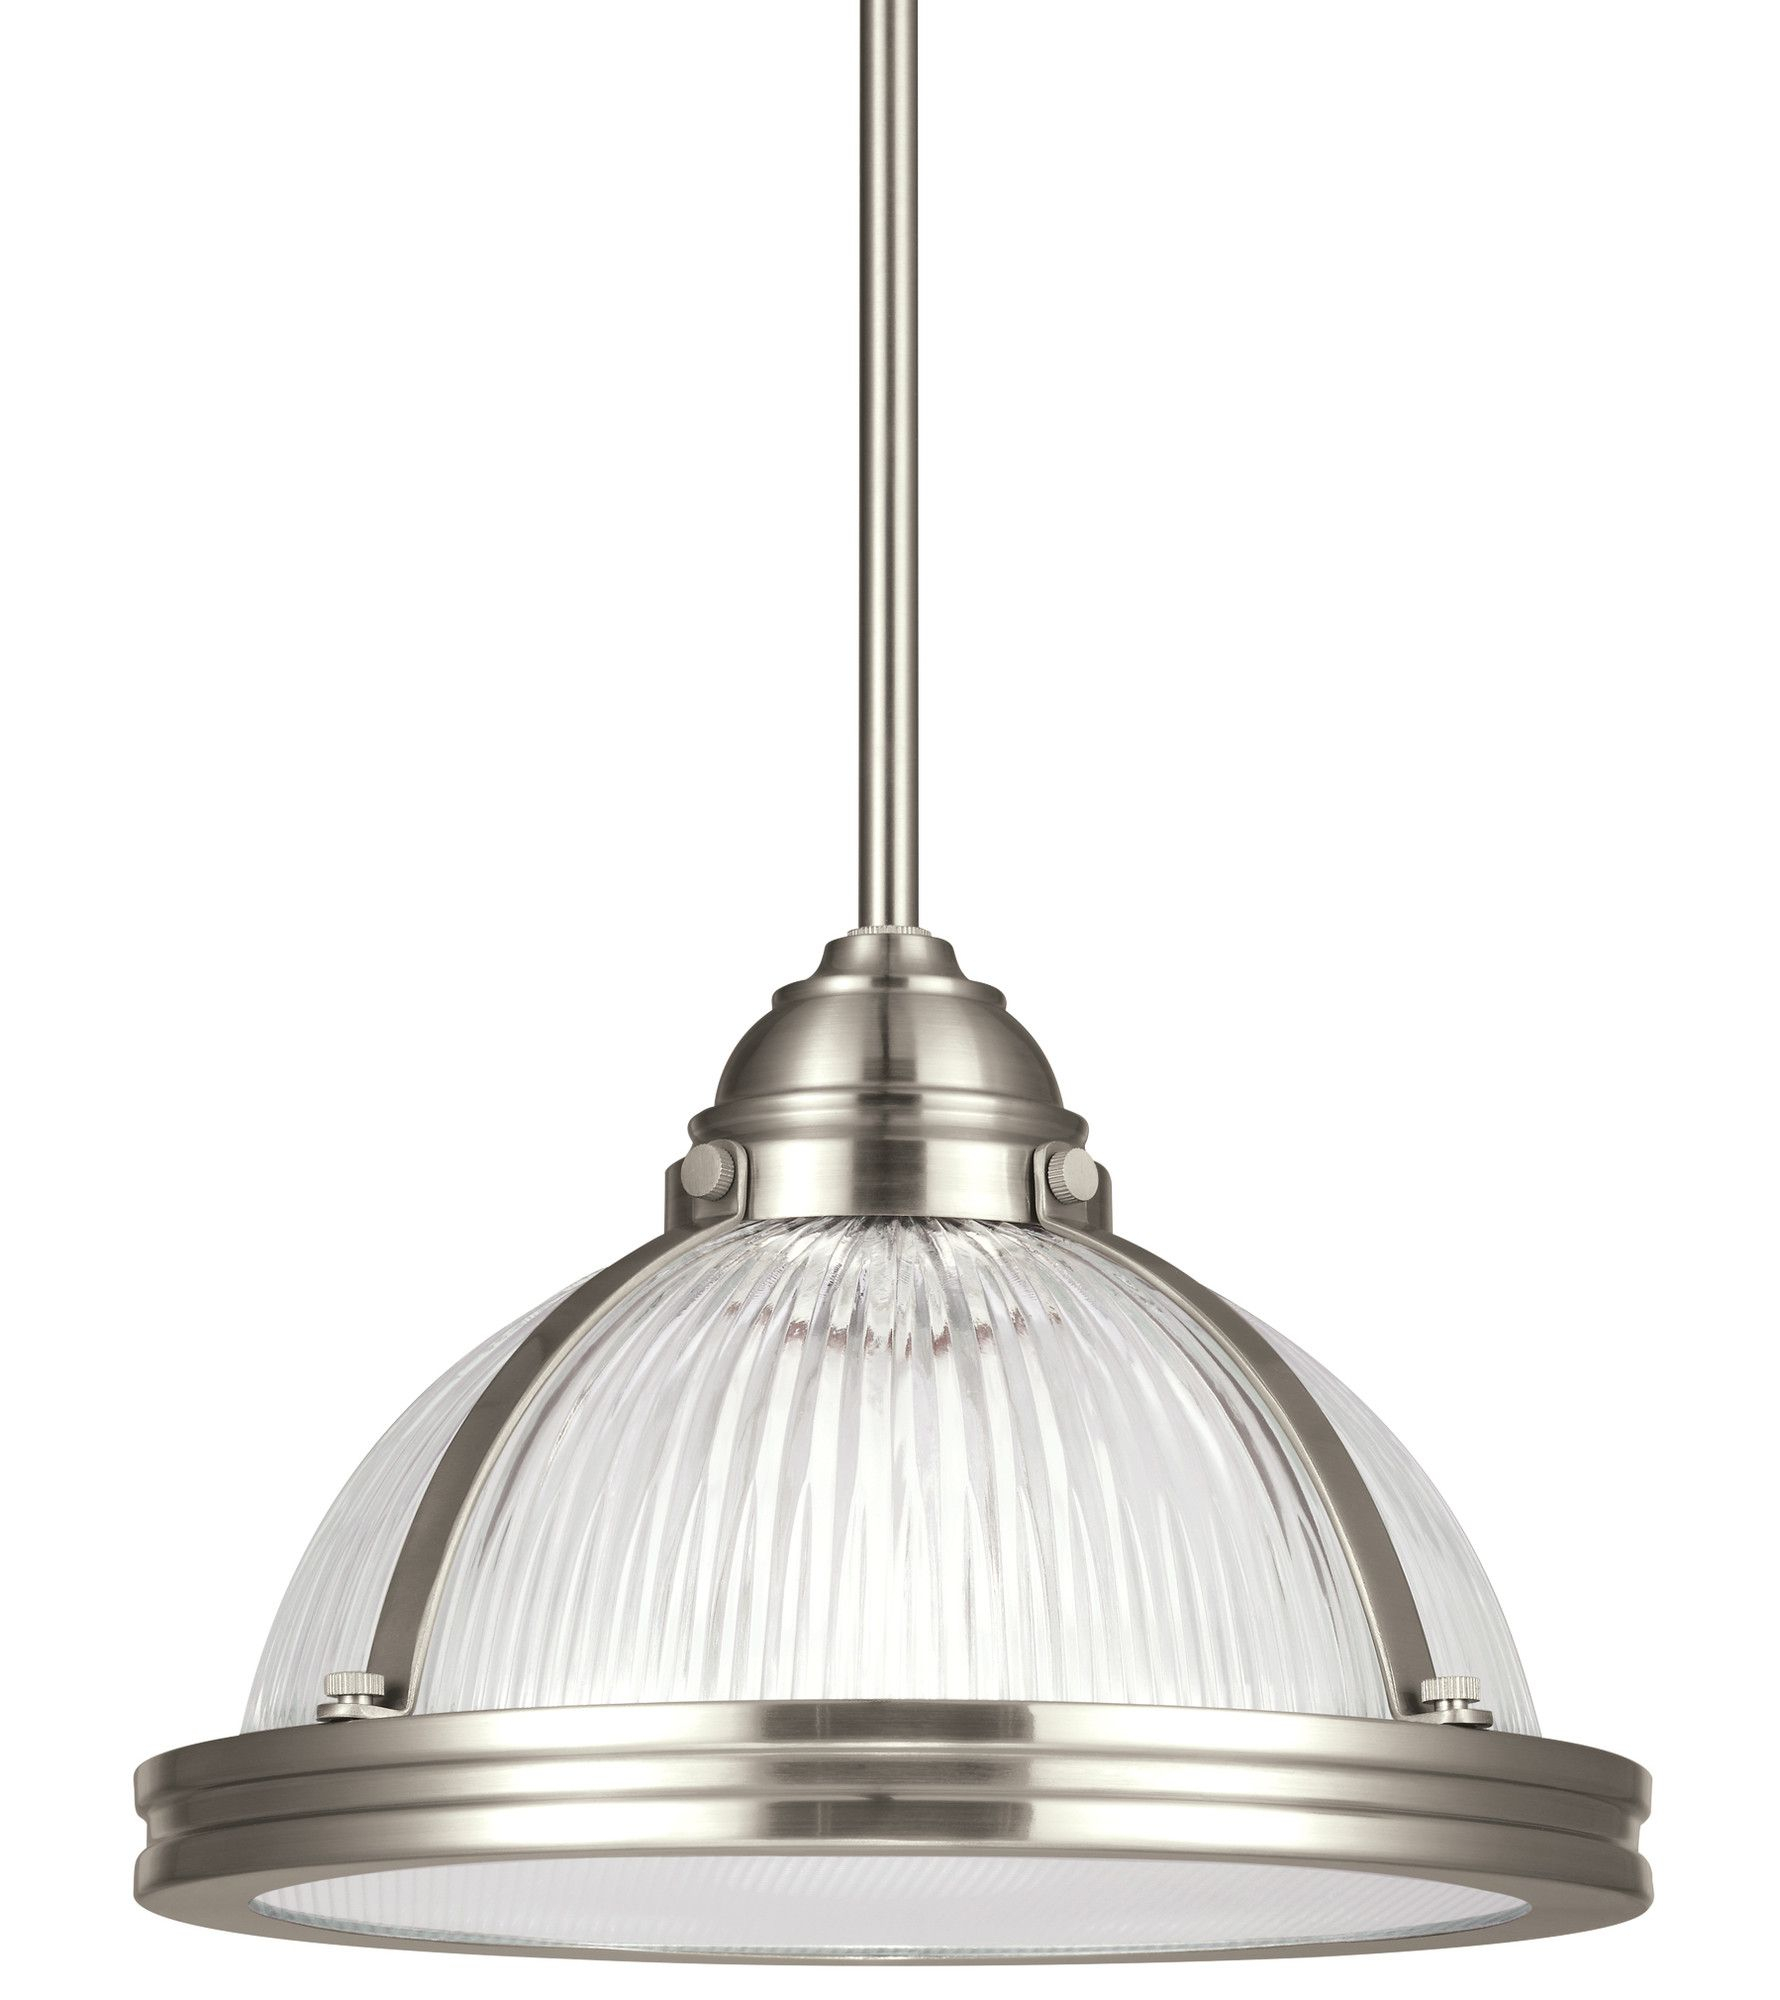 Denton Prismatic 1 Light Inverted Pendant | Products With Regard To Fresno Dome 1 Light Bell Pendants (Photo 15 of 30)